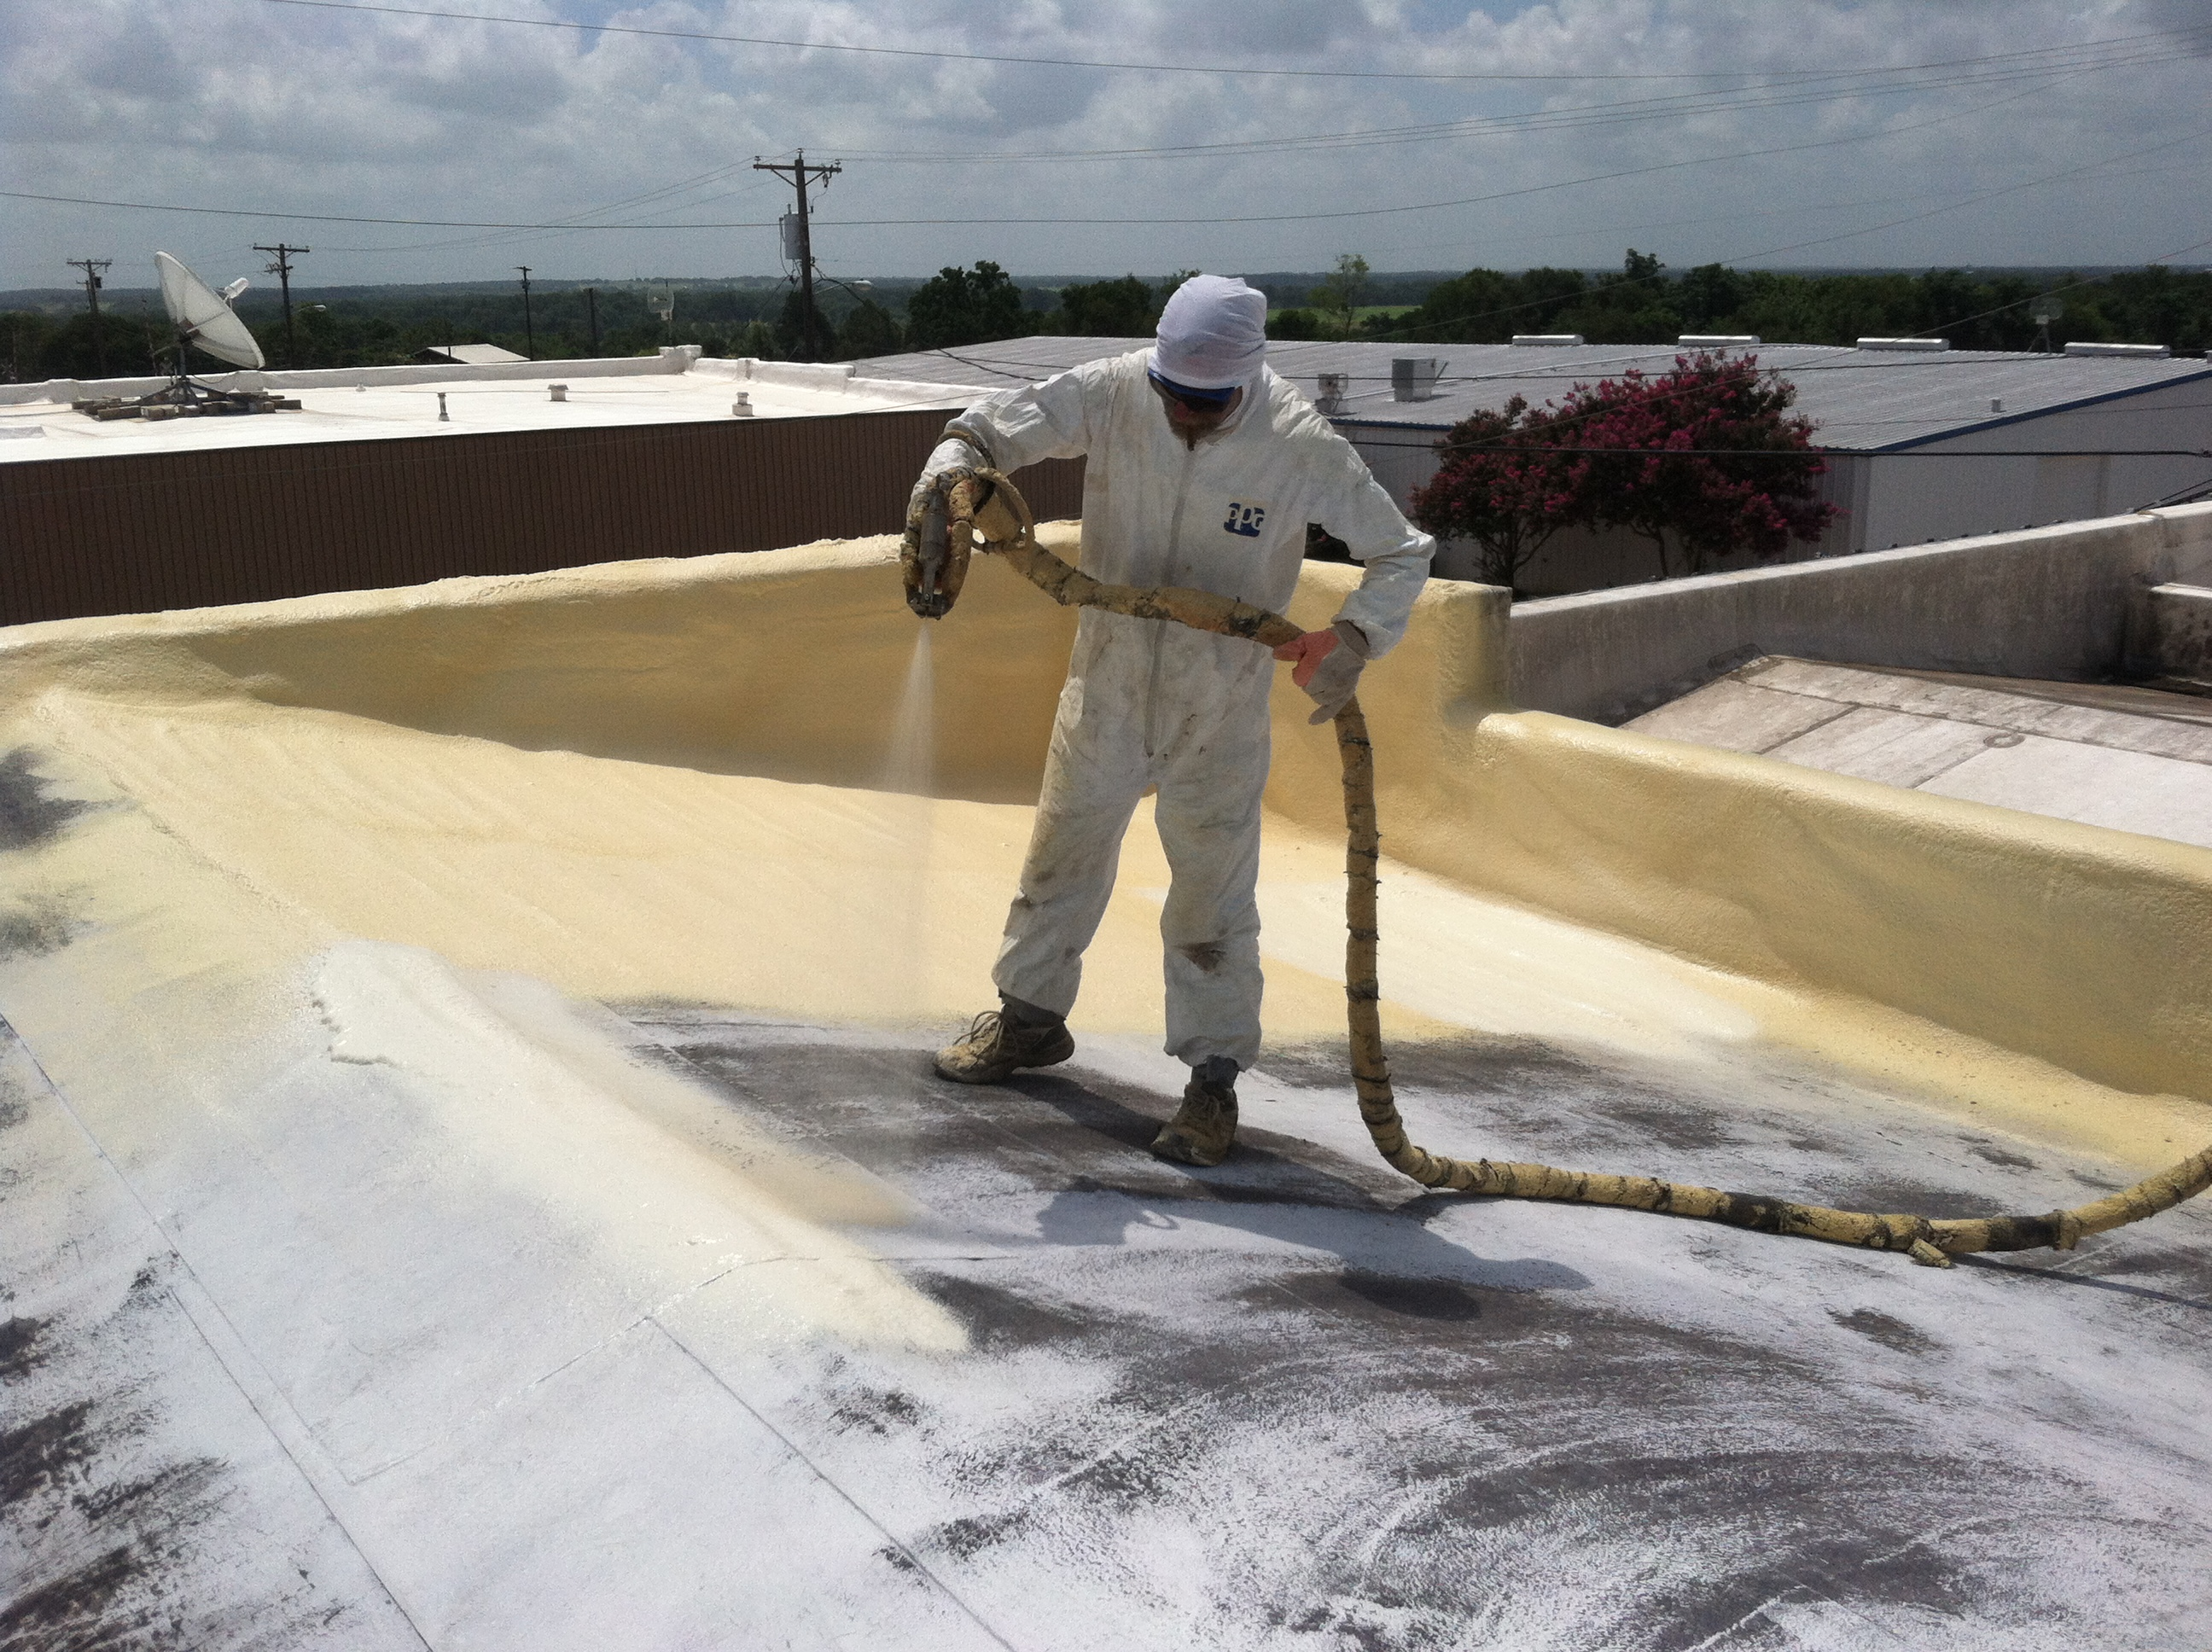 Spray Polyurethane Foam being applied to a roof. Not only does this provide an insulation & Spray Foam Roofing System | J L Cox Enterprises - 512-415-0032 memphite.com